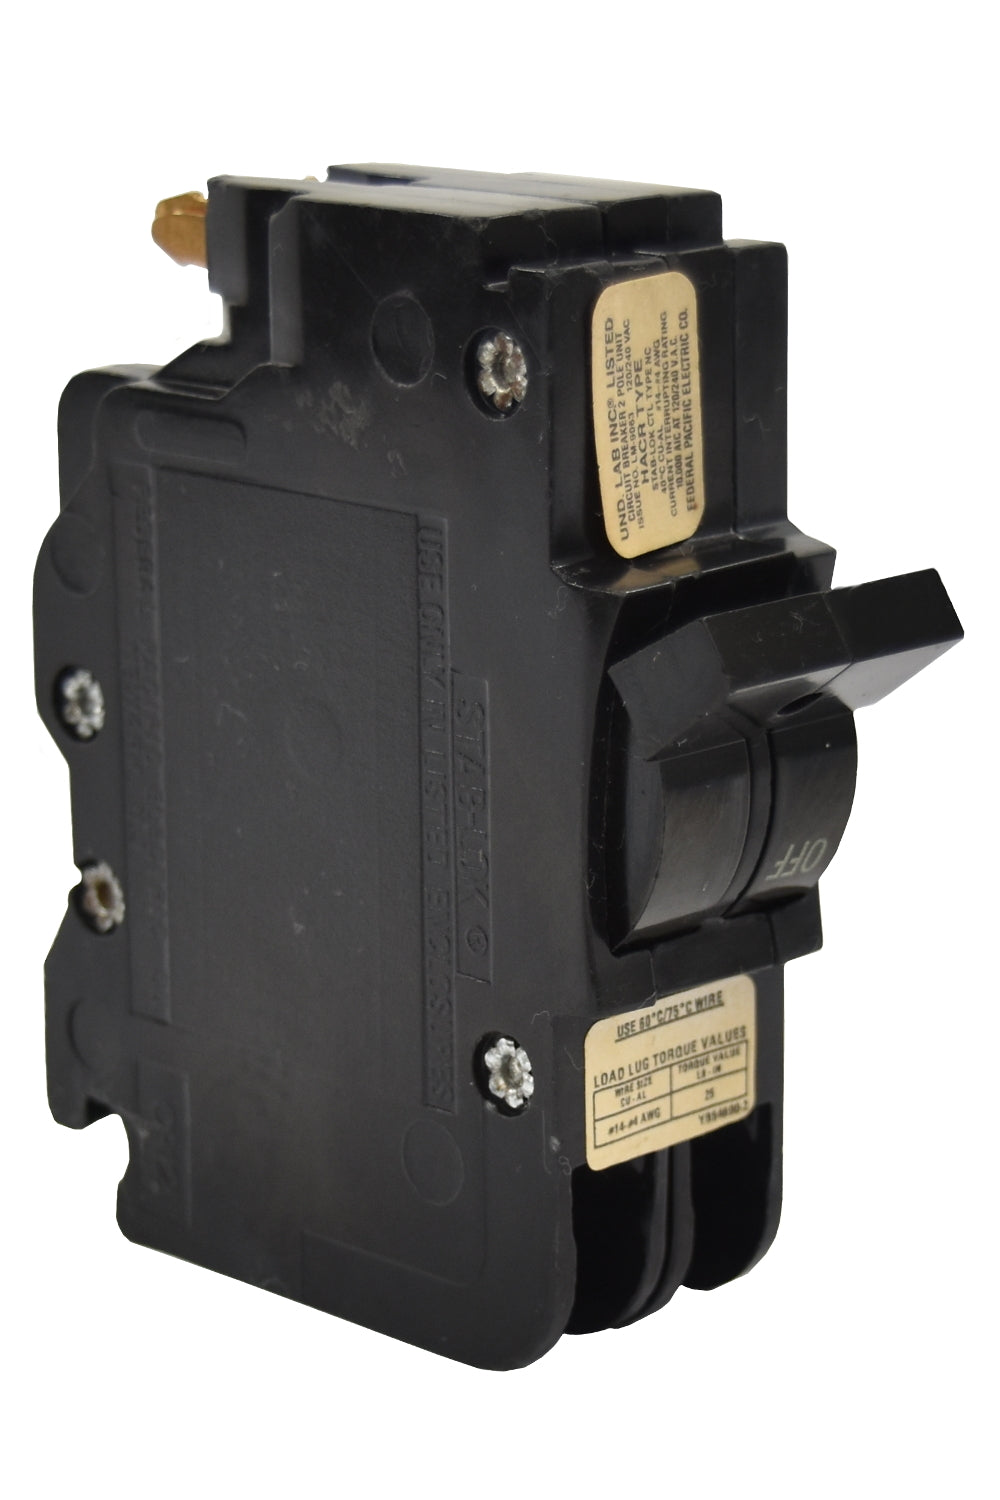 federal pacific nc0230 circuit breakers molded case denver breakerfederal pacific nc0230 circuit breaker